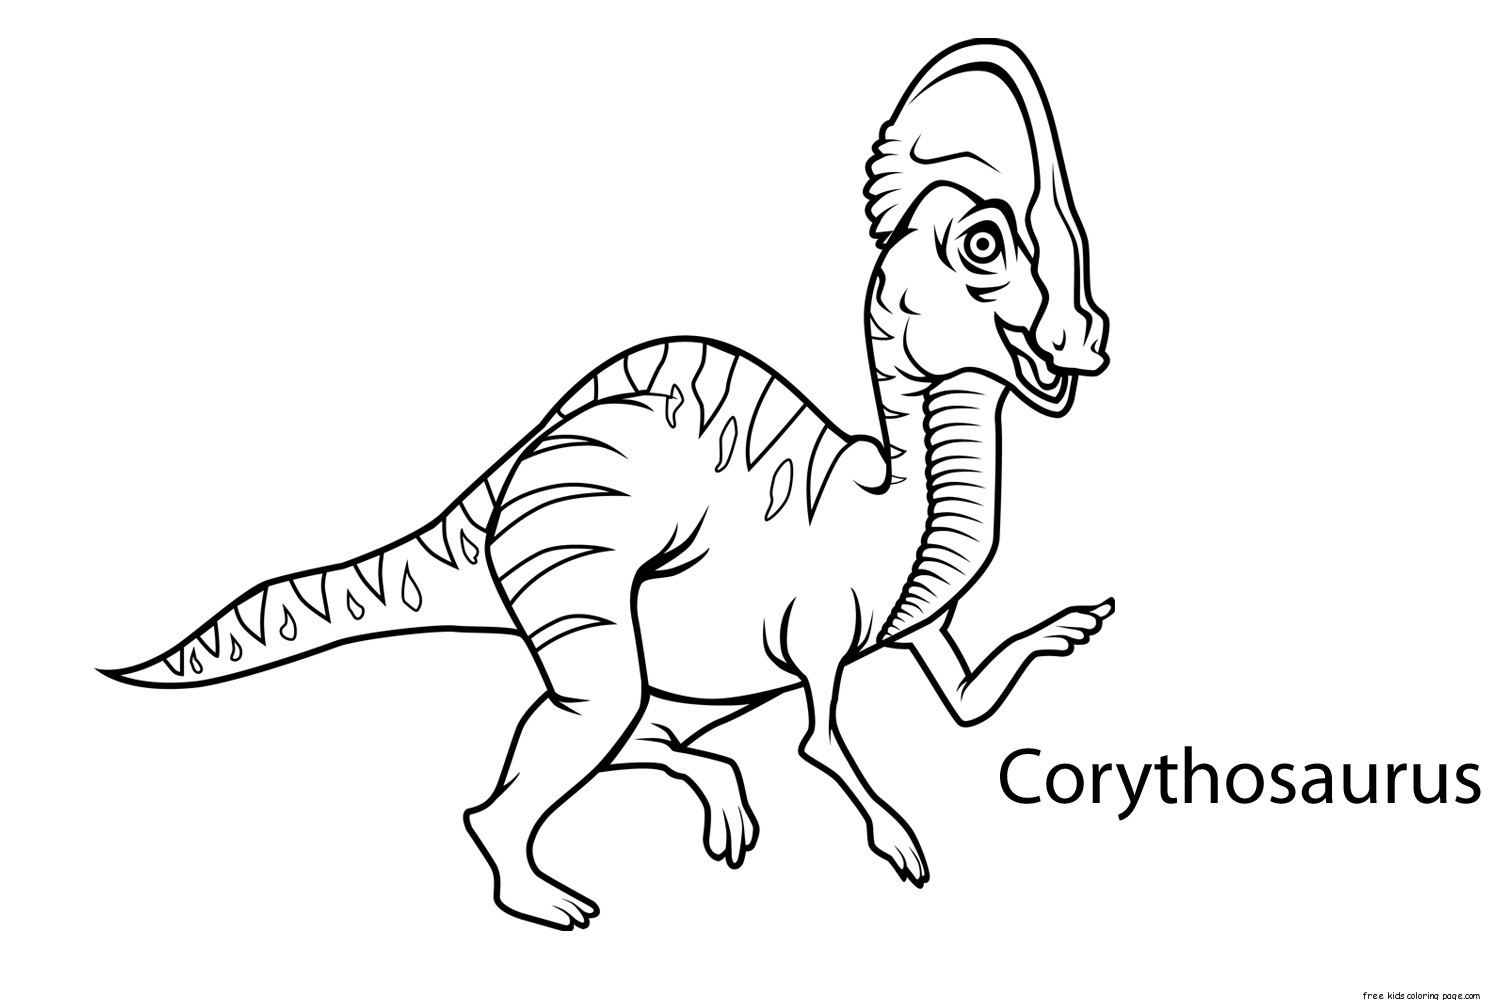 dinosaur print out coloring pages the good dinosaur coloring pages disneyclipscom dinosaur pages print out coloring